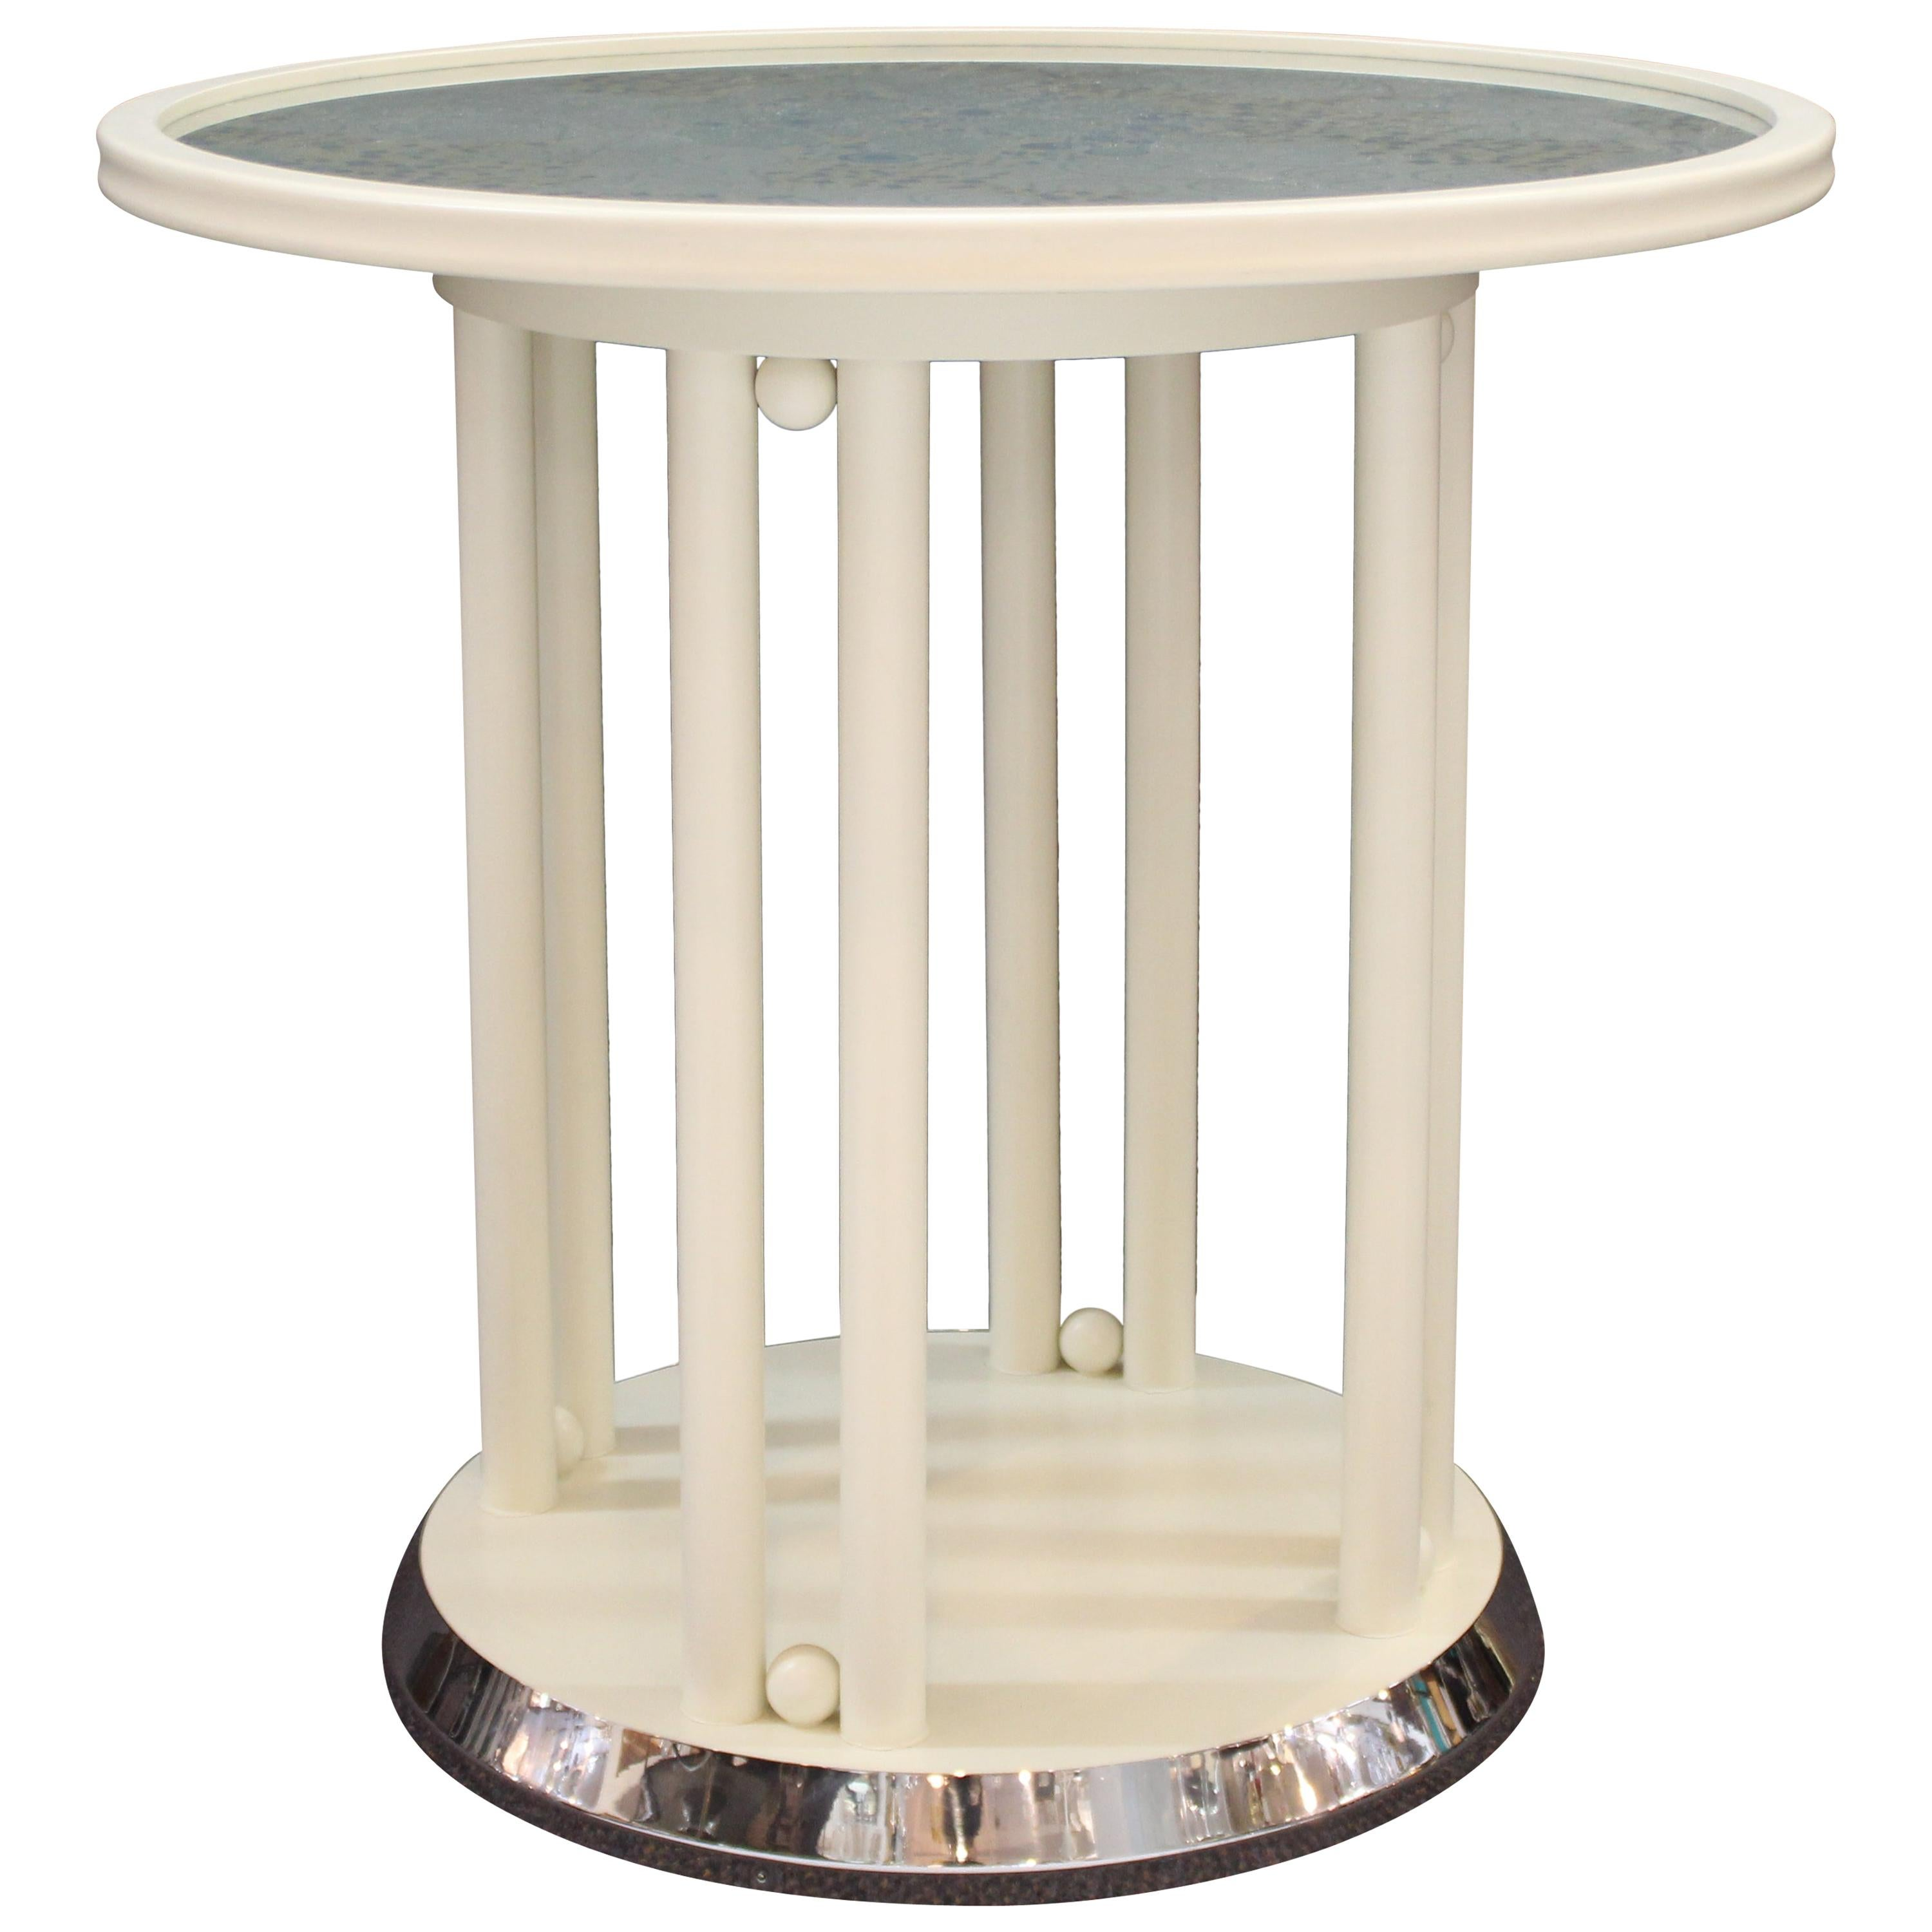 Josef Hoffmann for Wittmann Viennese Secessionist 'Fledermaus' Table in White